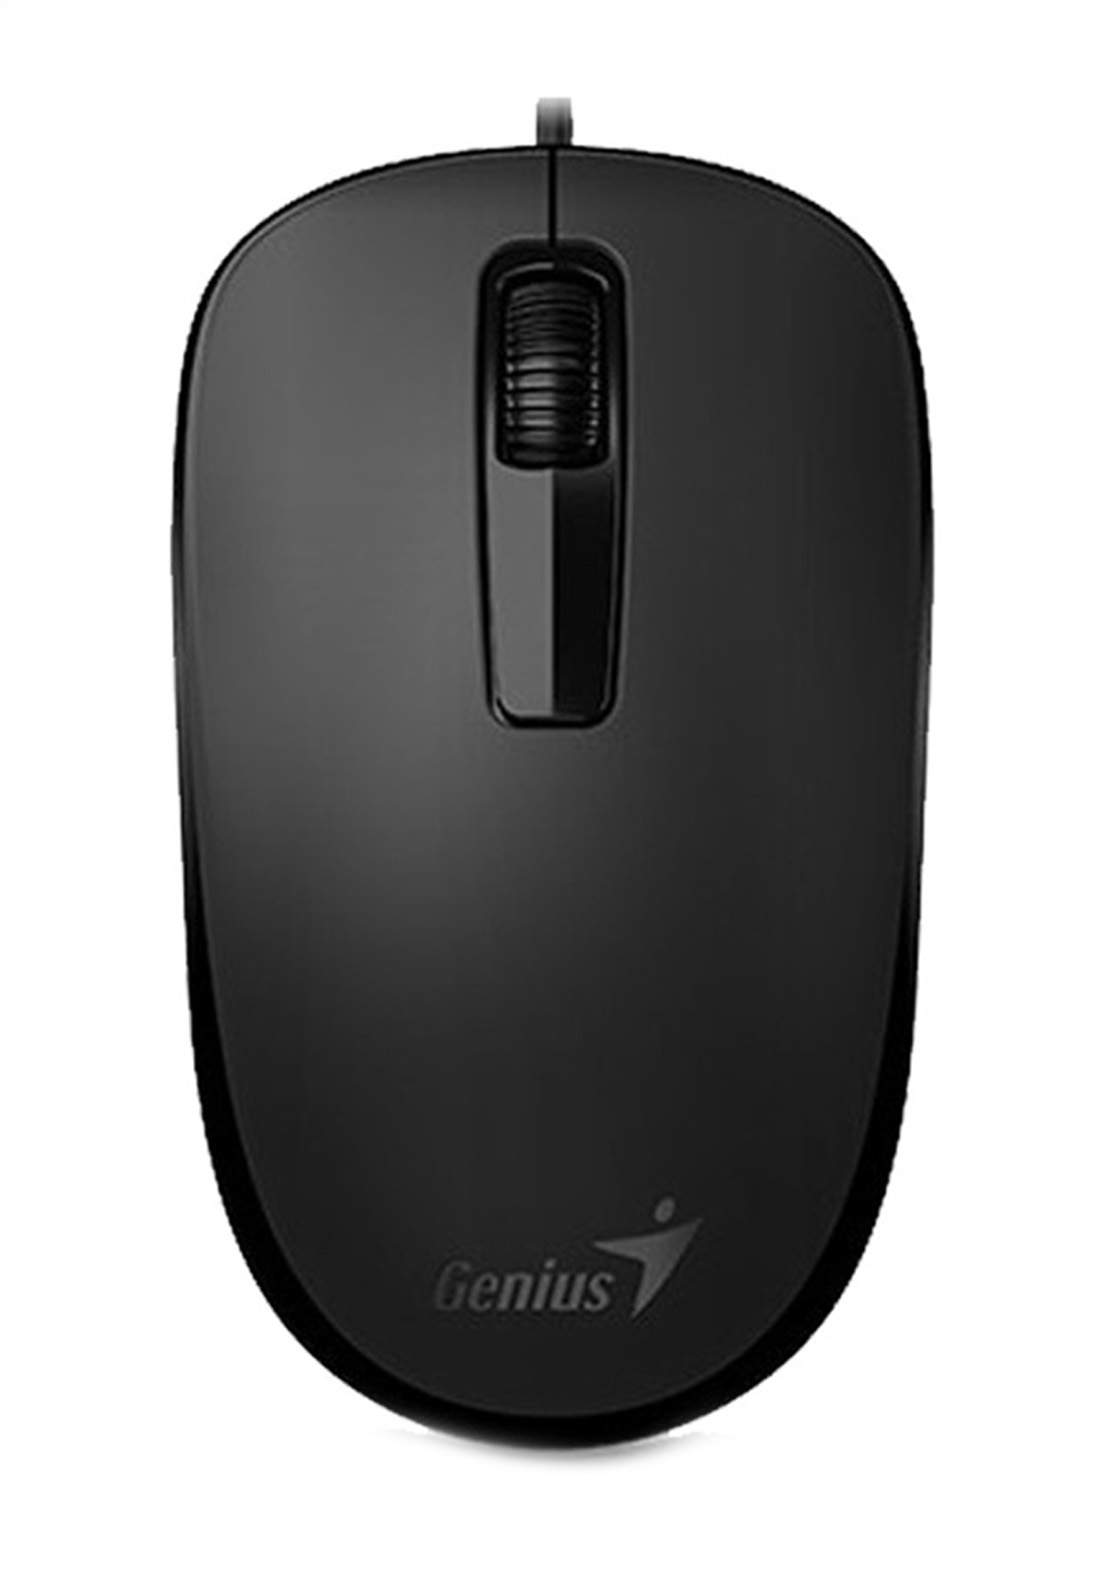 Genius DX-120 Wired Mouse - Black ماوس